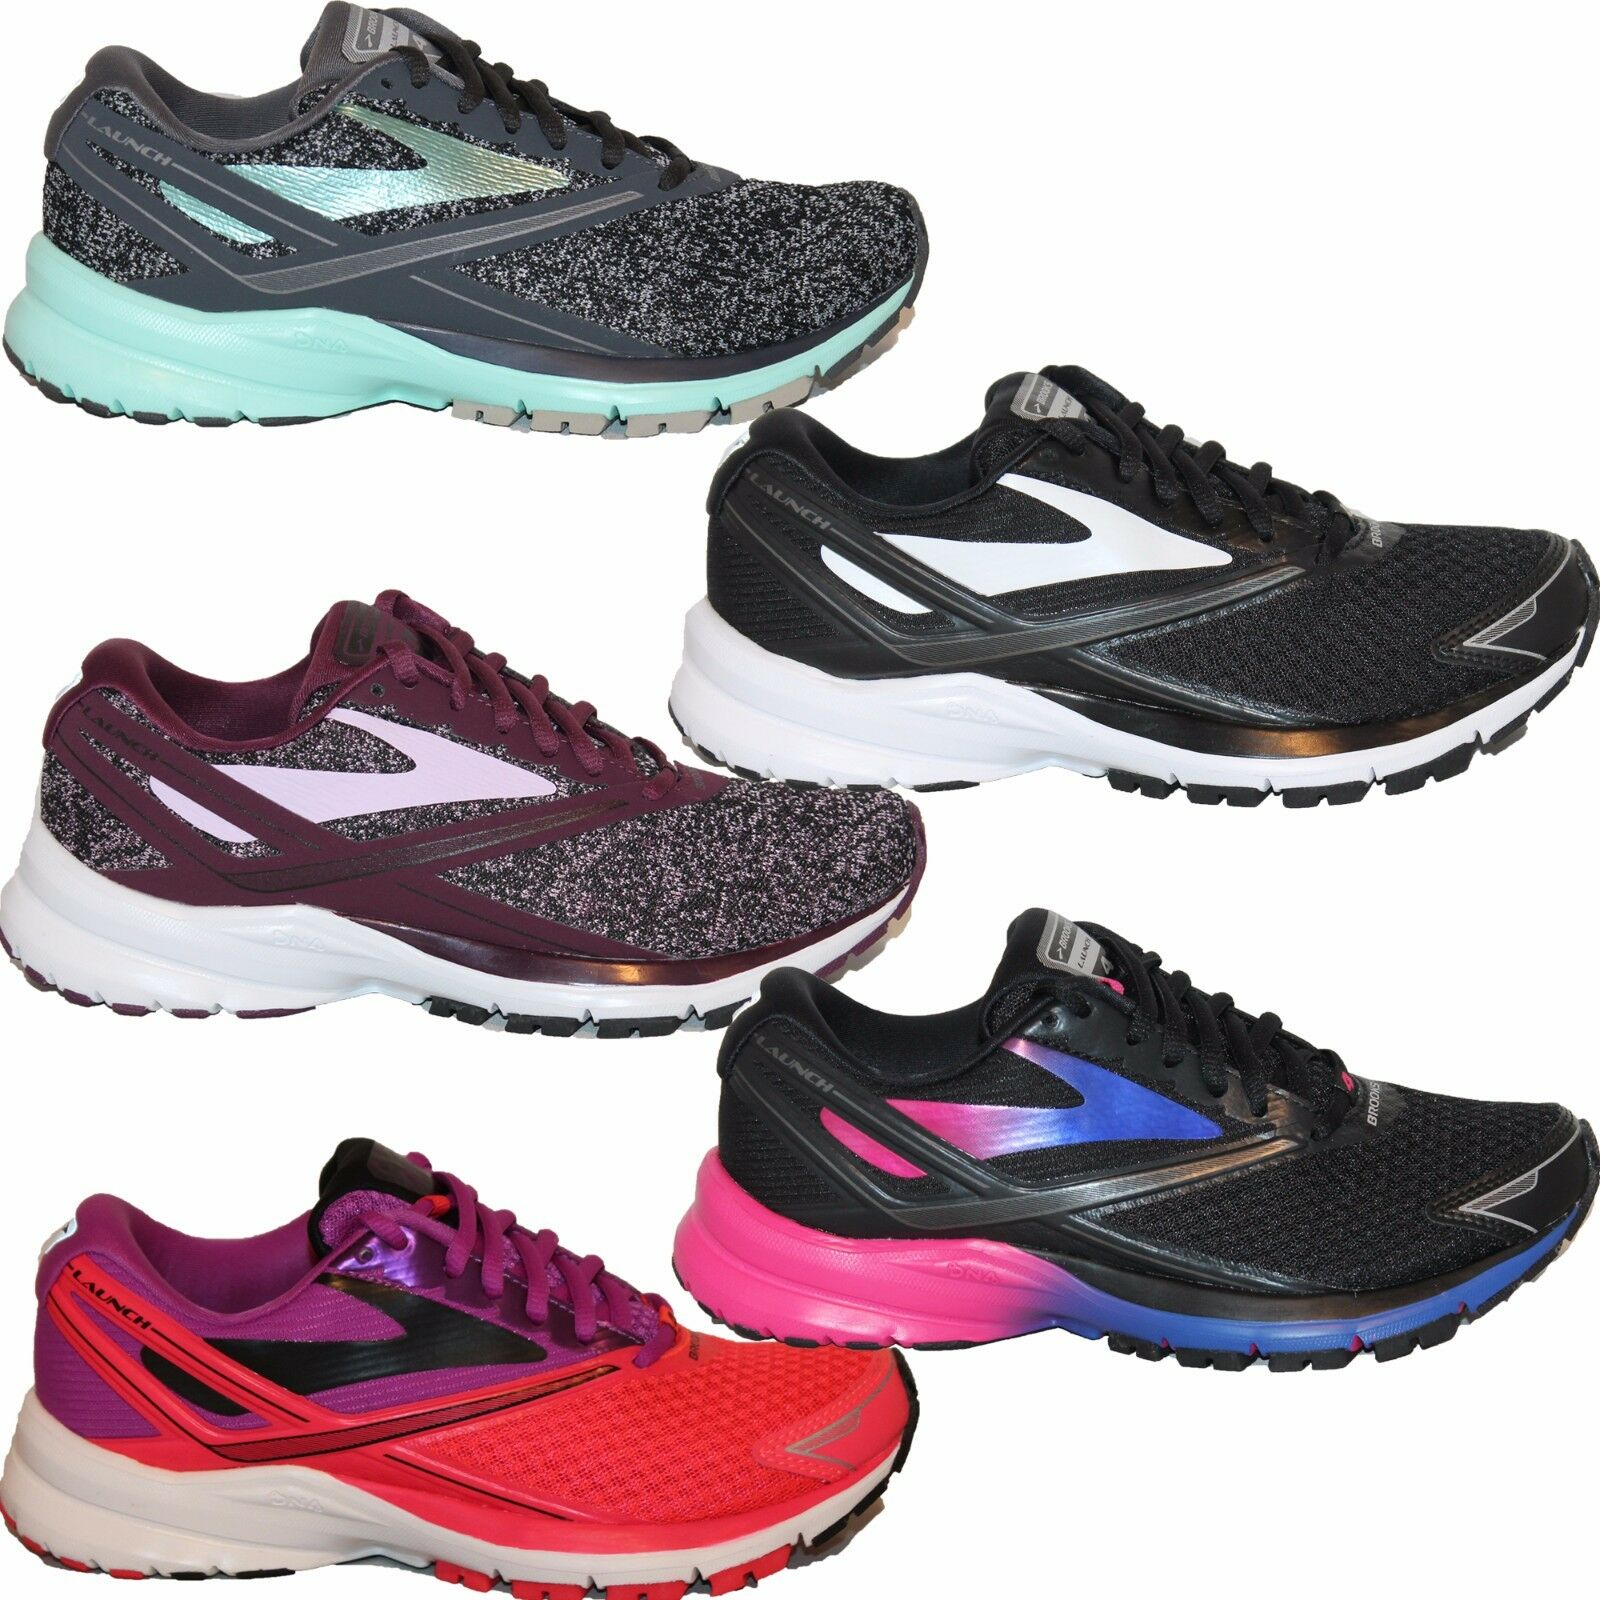 Donna Brooks LAUNCH 4 Neutral NIB Cushion Running Shoes  NIB Neutral e45930